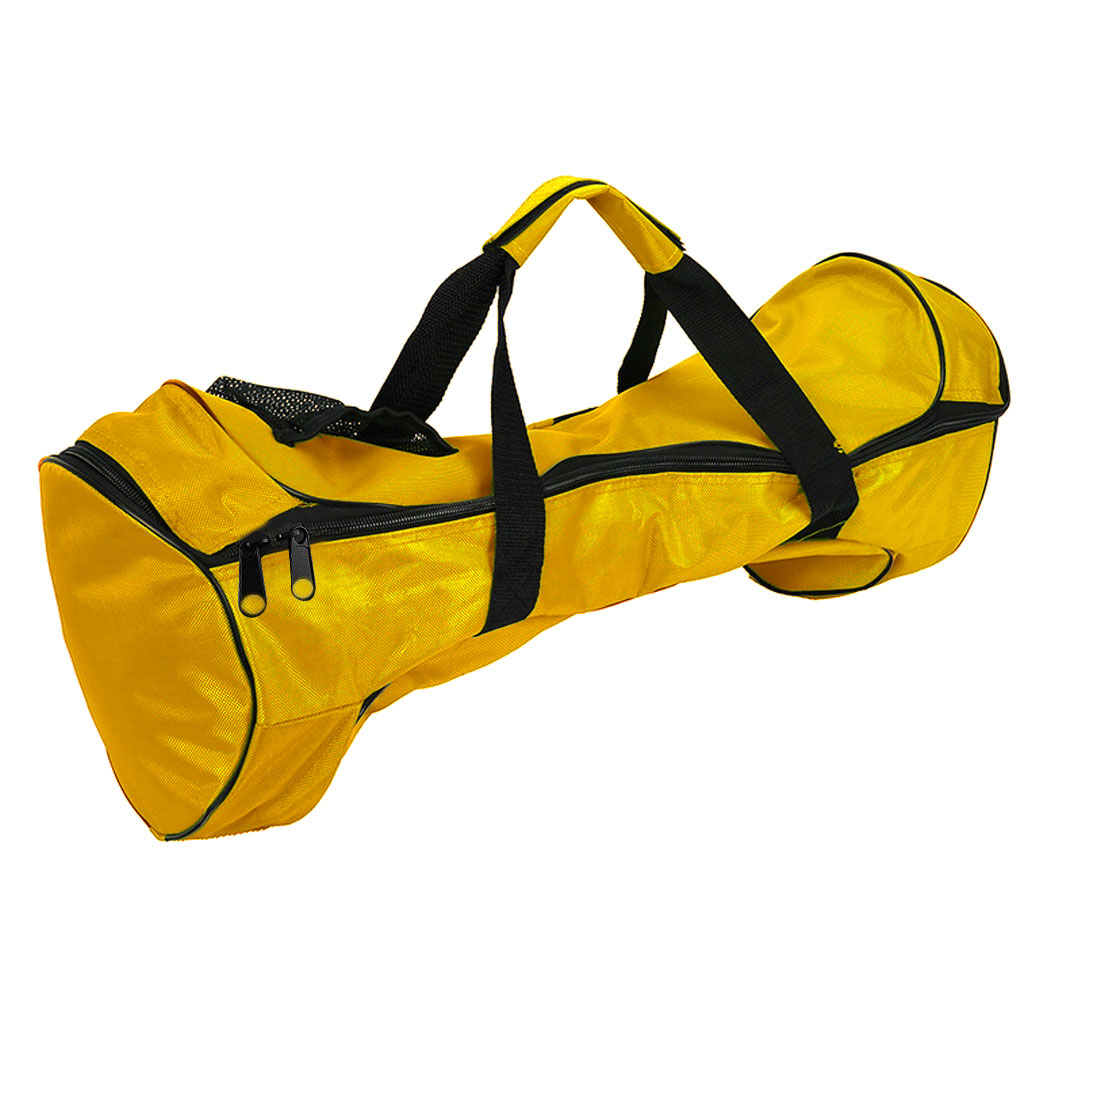 """Balancing Electric Unicycle Scooter Carrying Bag Backpack Yellow for 10"""" Wheels"""